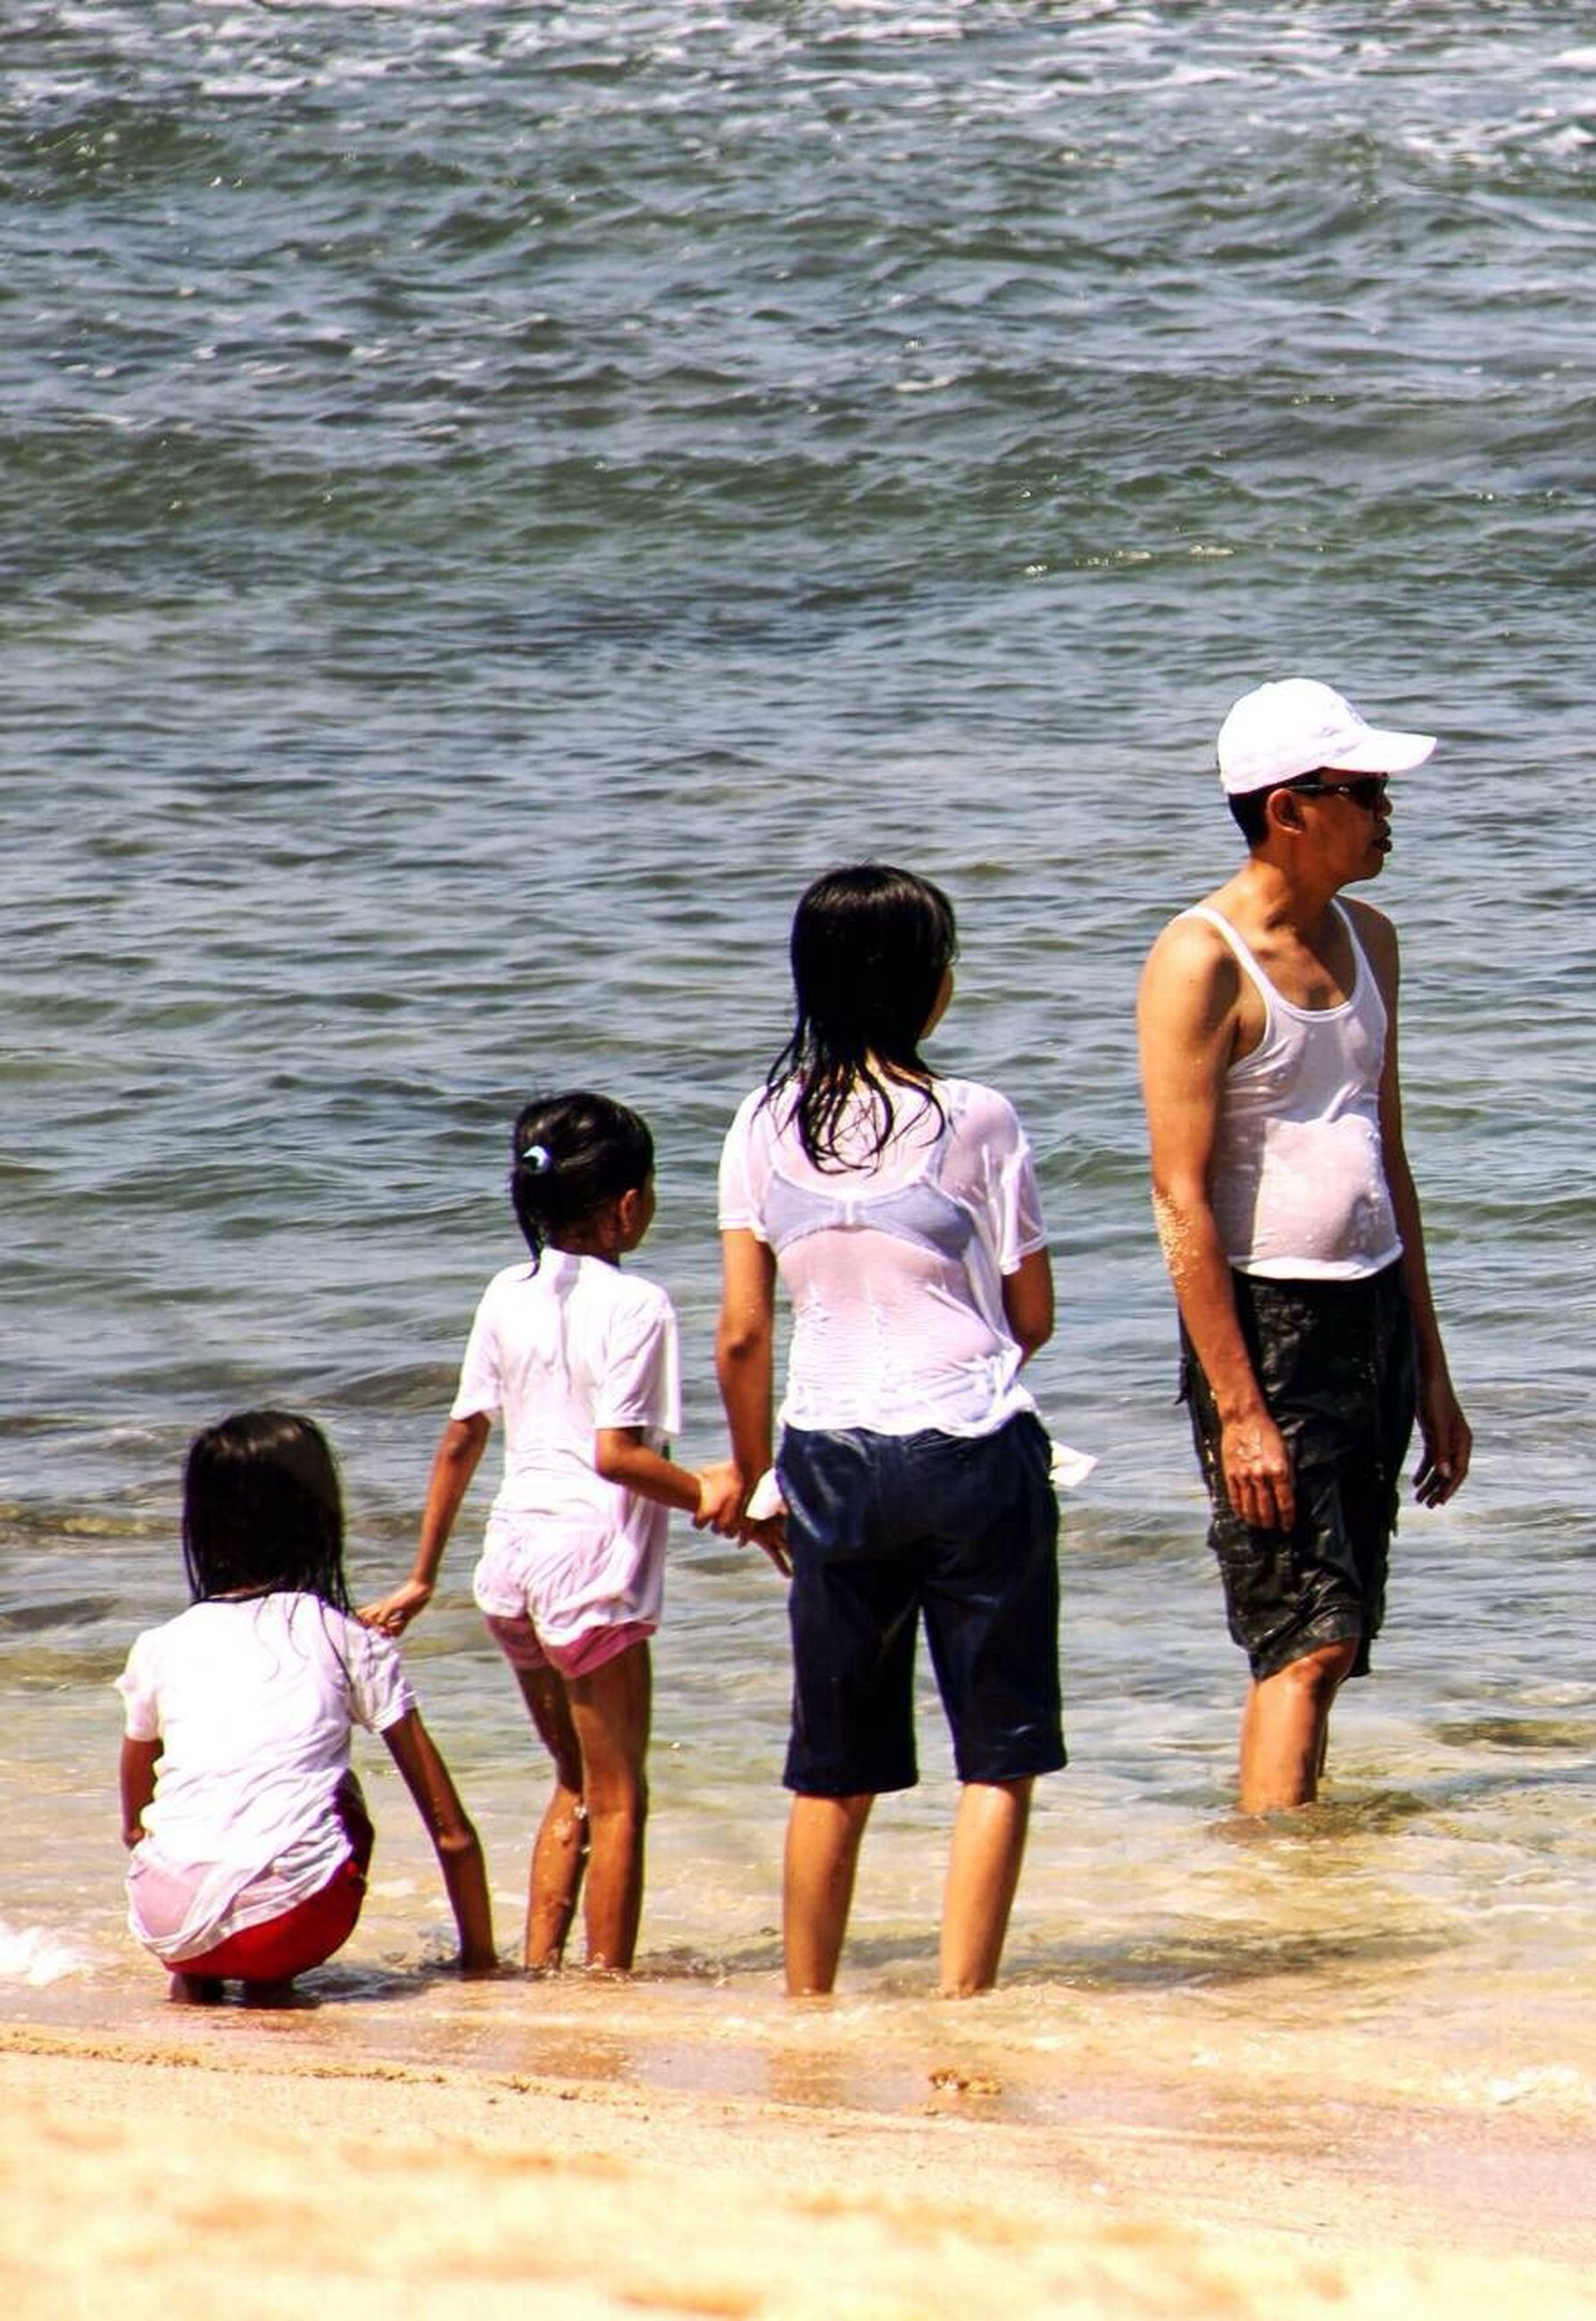 water, togetherness, lifestyles, bonding, leisure activity, love, rear view, family, friendship, person, girls, men, childhood, boys, vacations, full length, casual clothing, sea